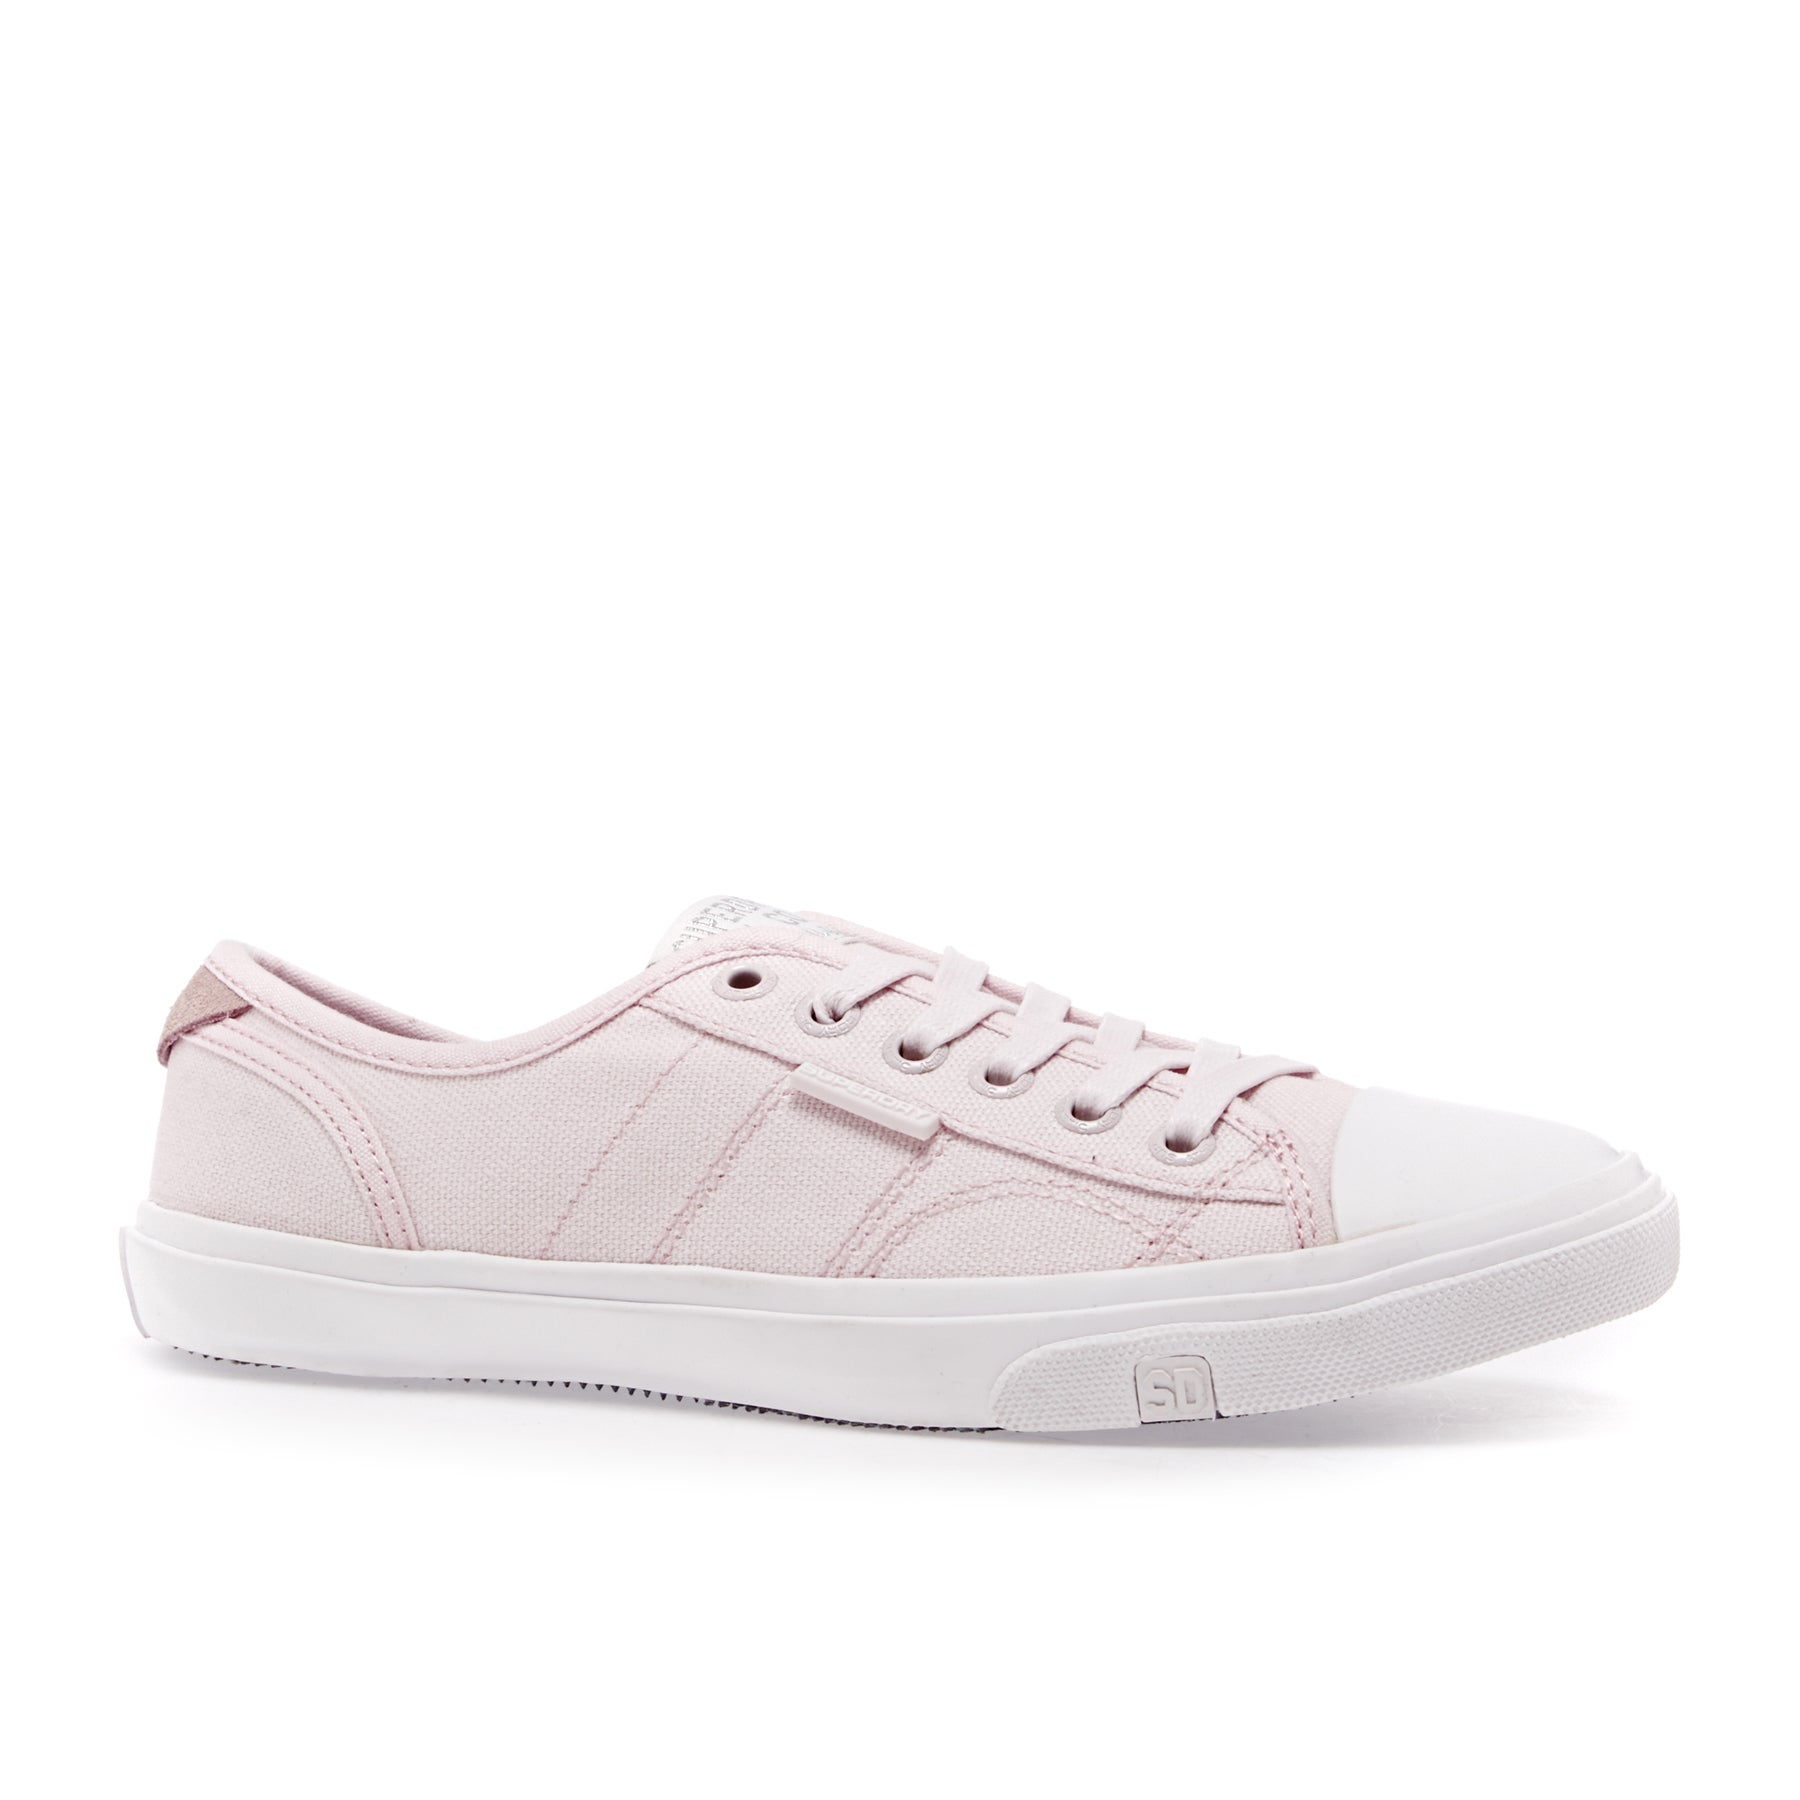 Superdry Low Pro Shoes - Rose Pink